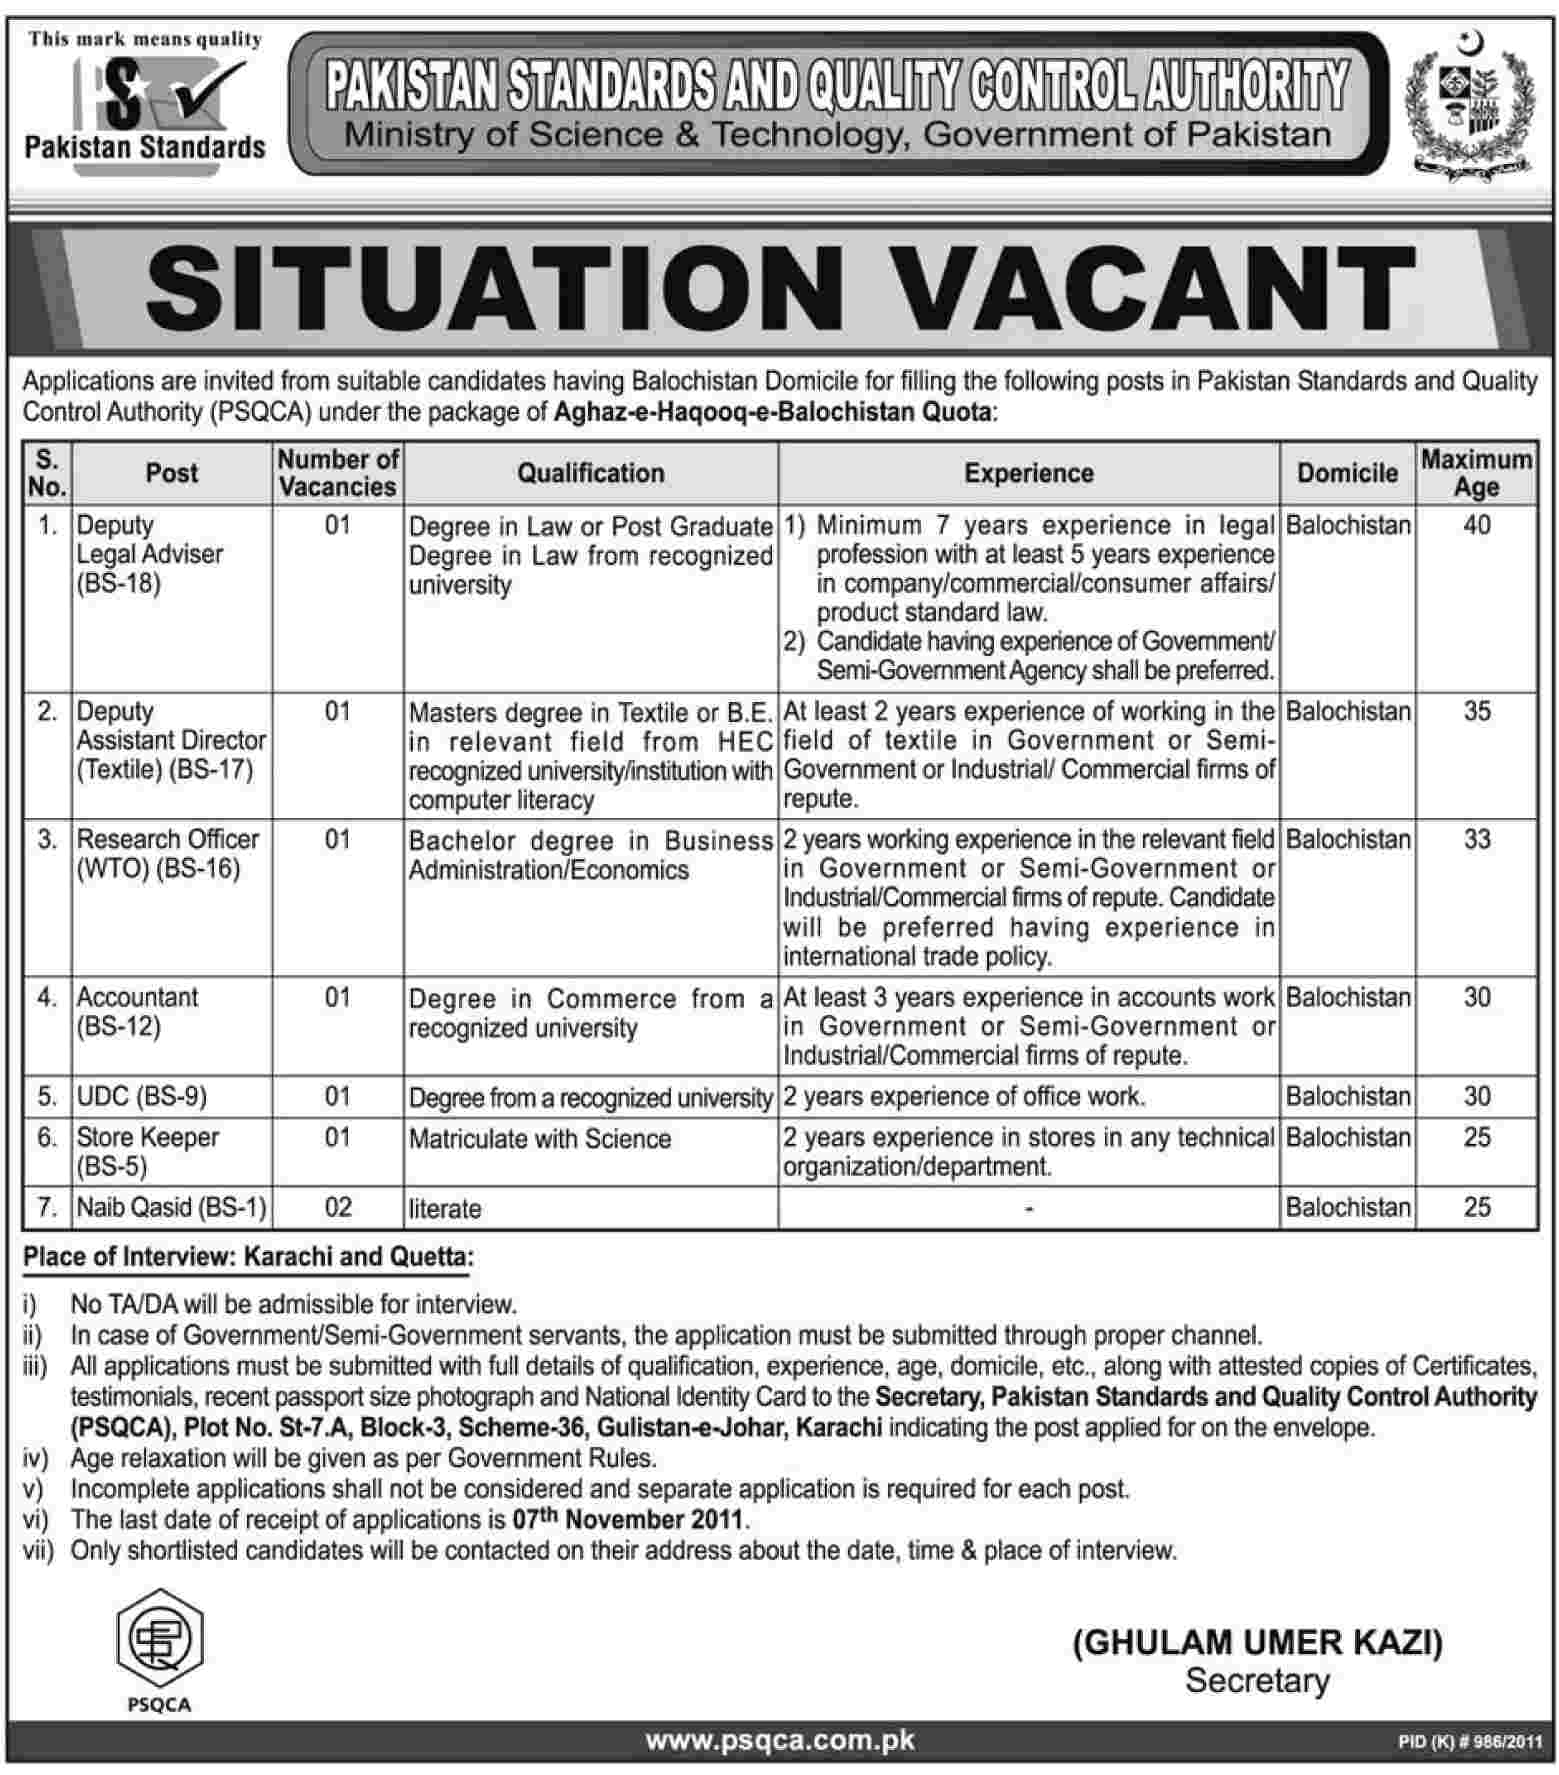 Pakistan Standards and Quality Control Authority, Jobs Opportunities